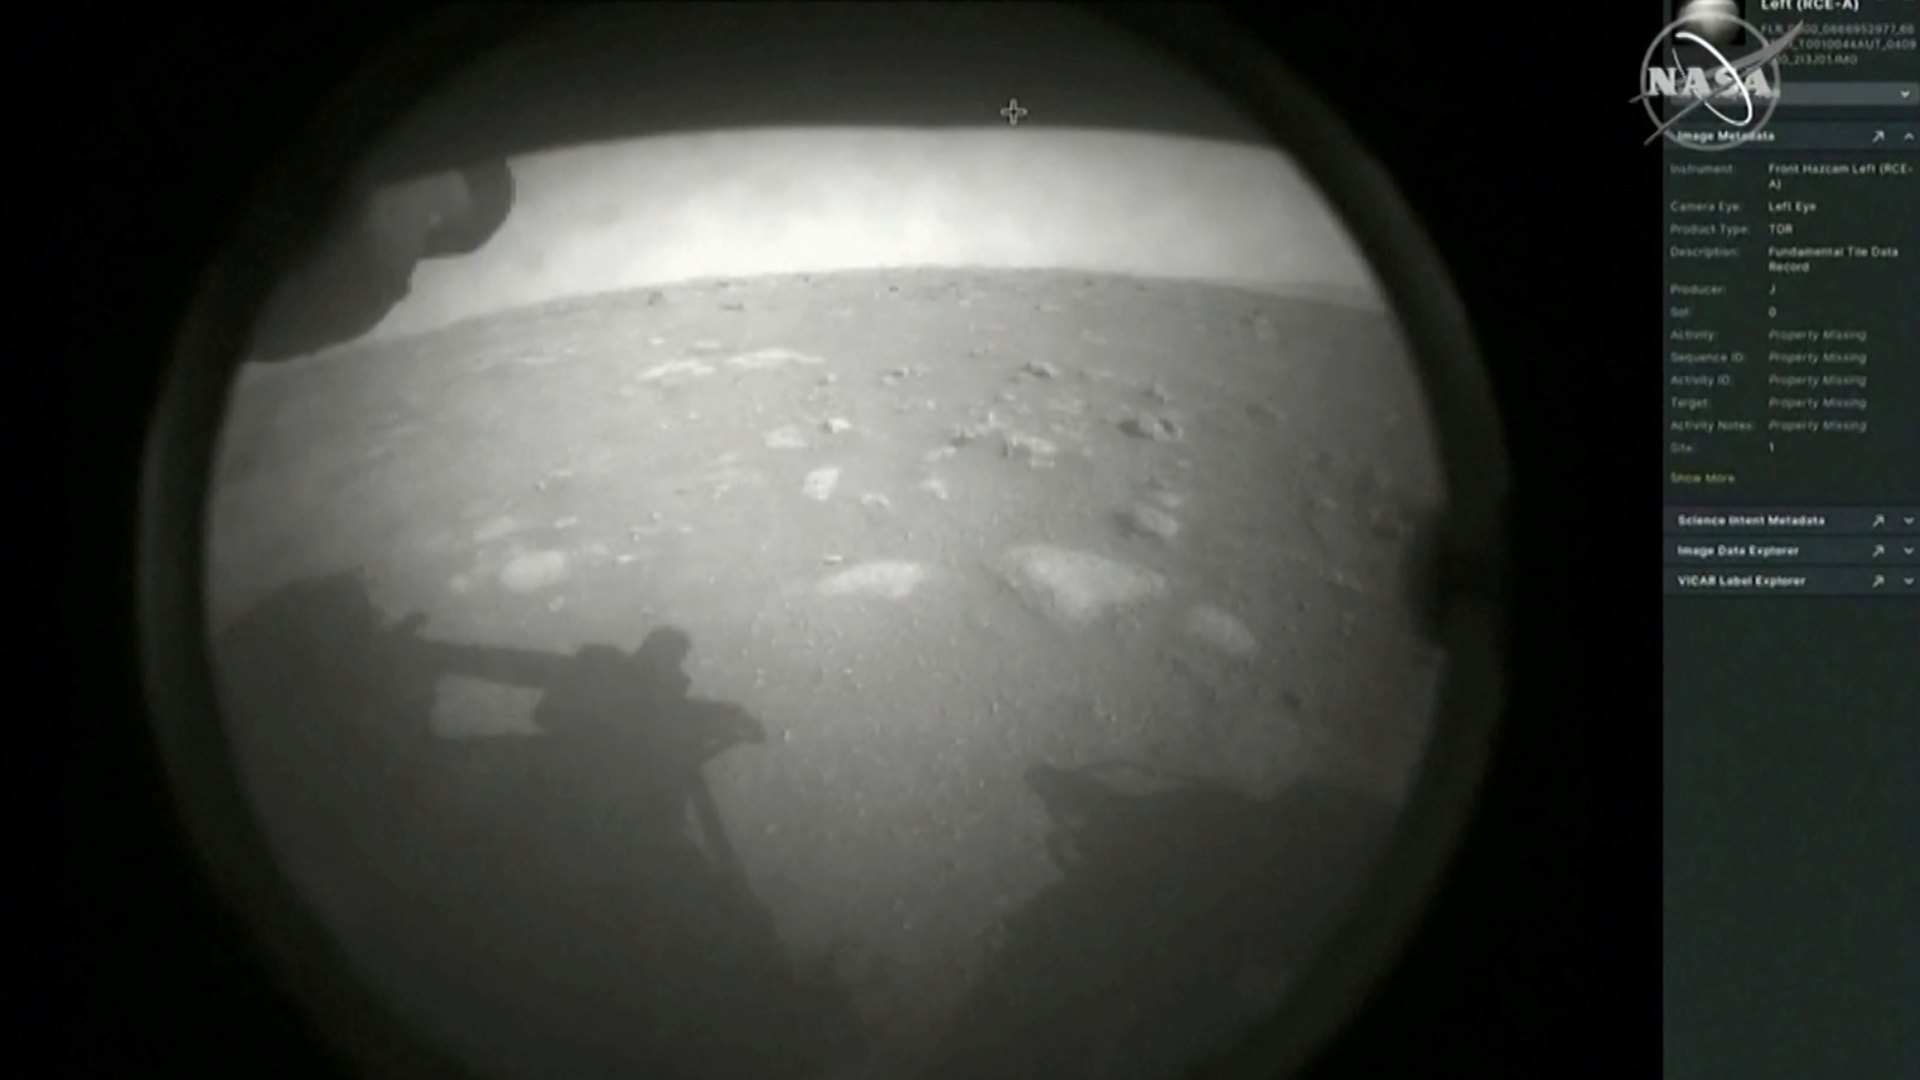 The first images arrive moments after NASA's Perseverance Mars roverspacecraft successfully touched down on Mars